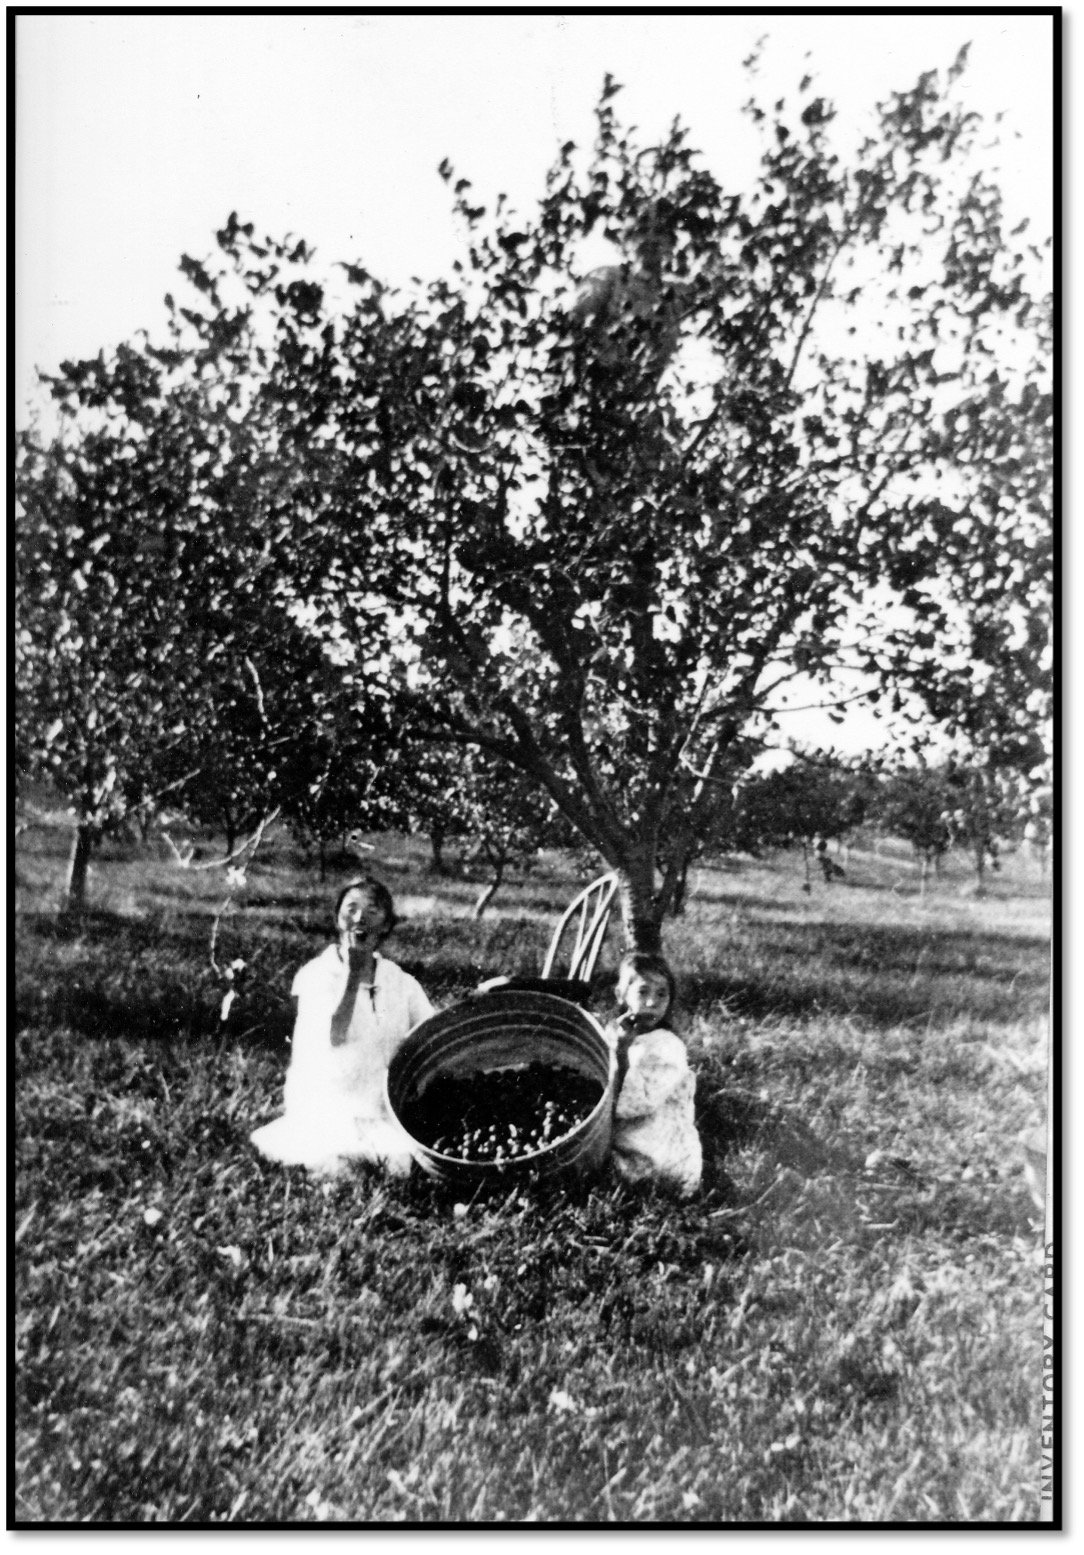 Children with Tub of Apples Burt Hill Orchard Sand Island WI NPSIIDIC 1910c11